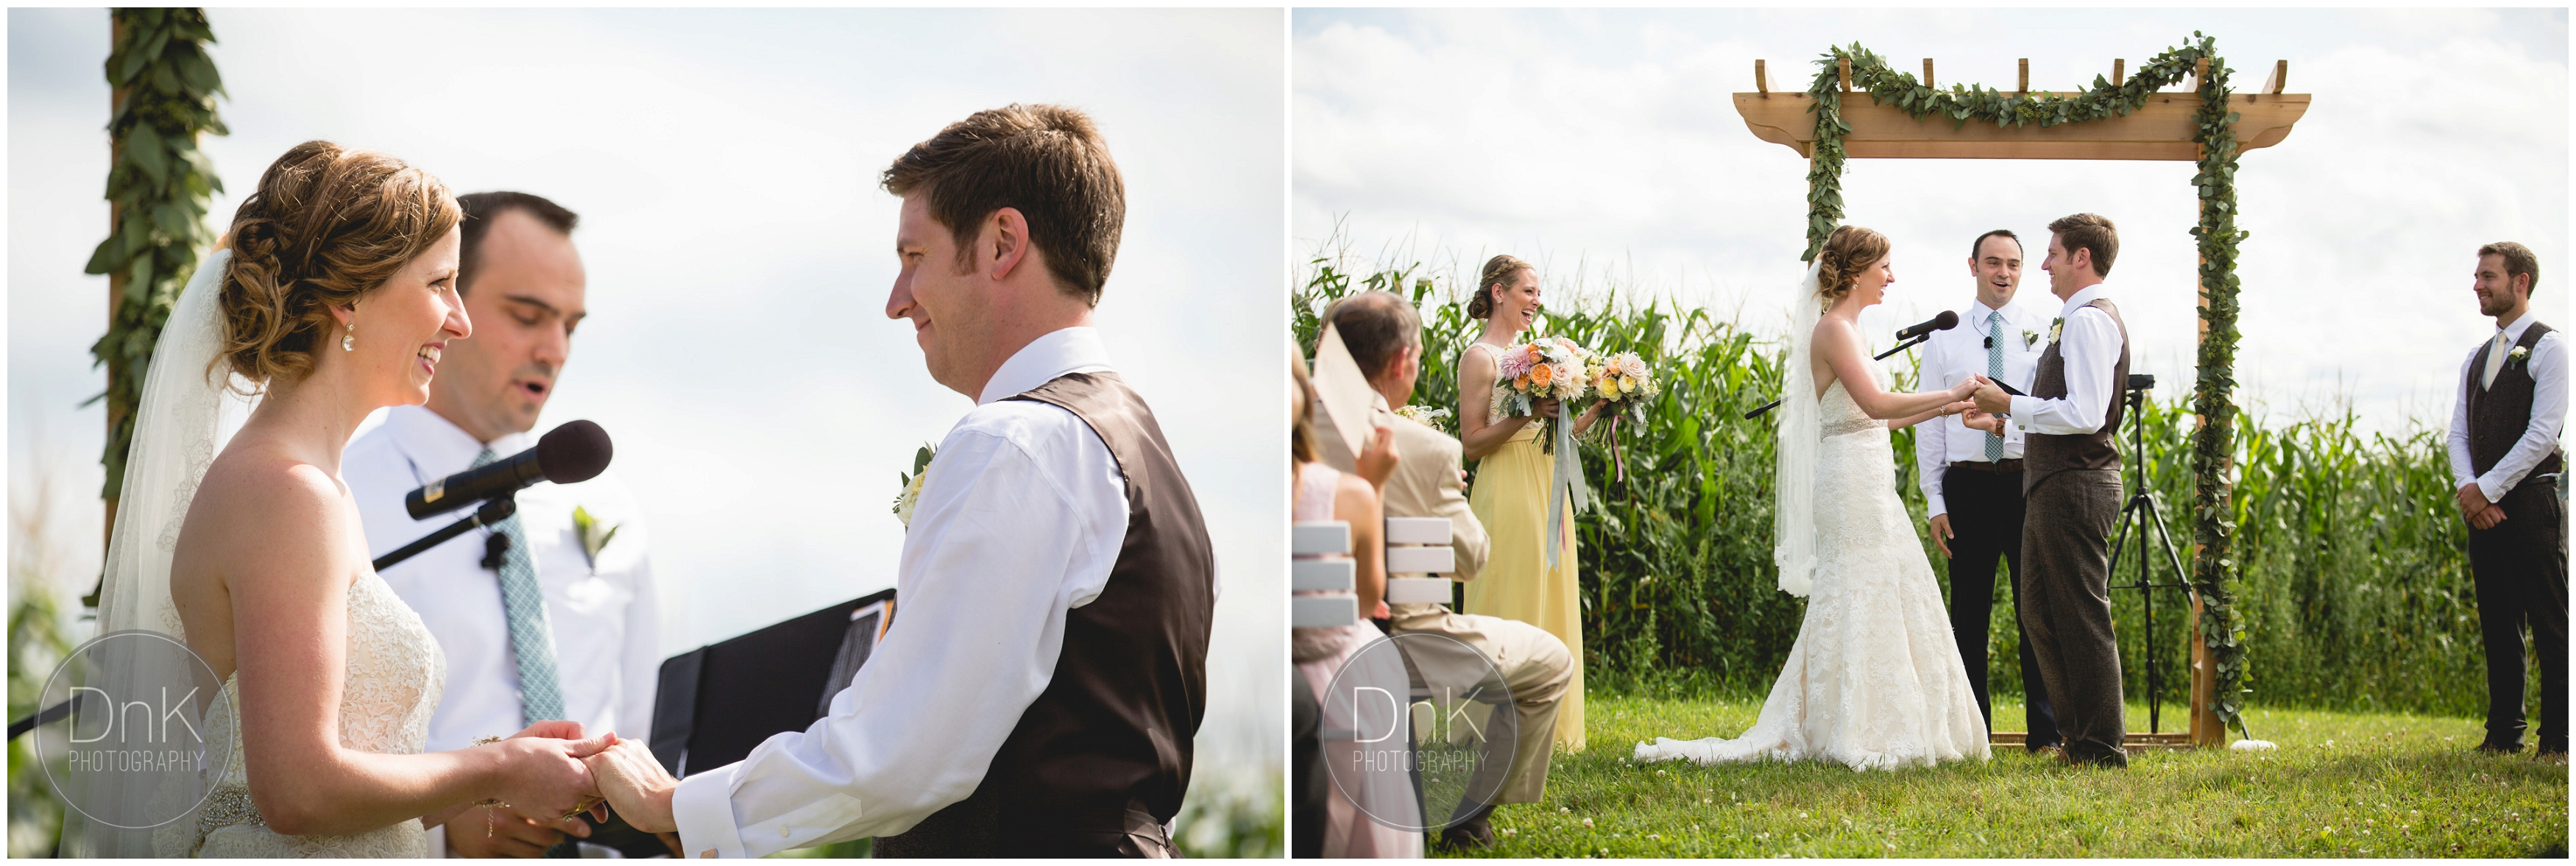 29 - Dellwood Barn Wedding Ceremony